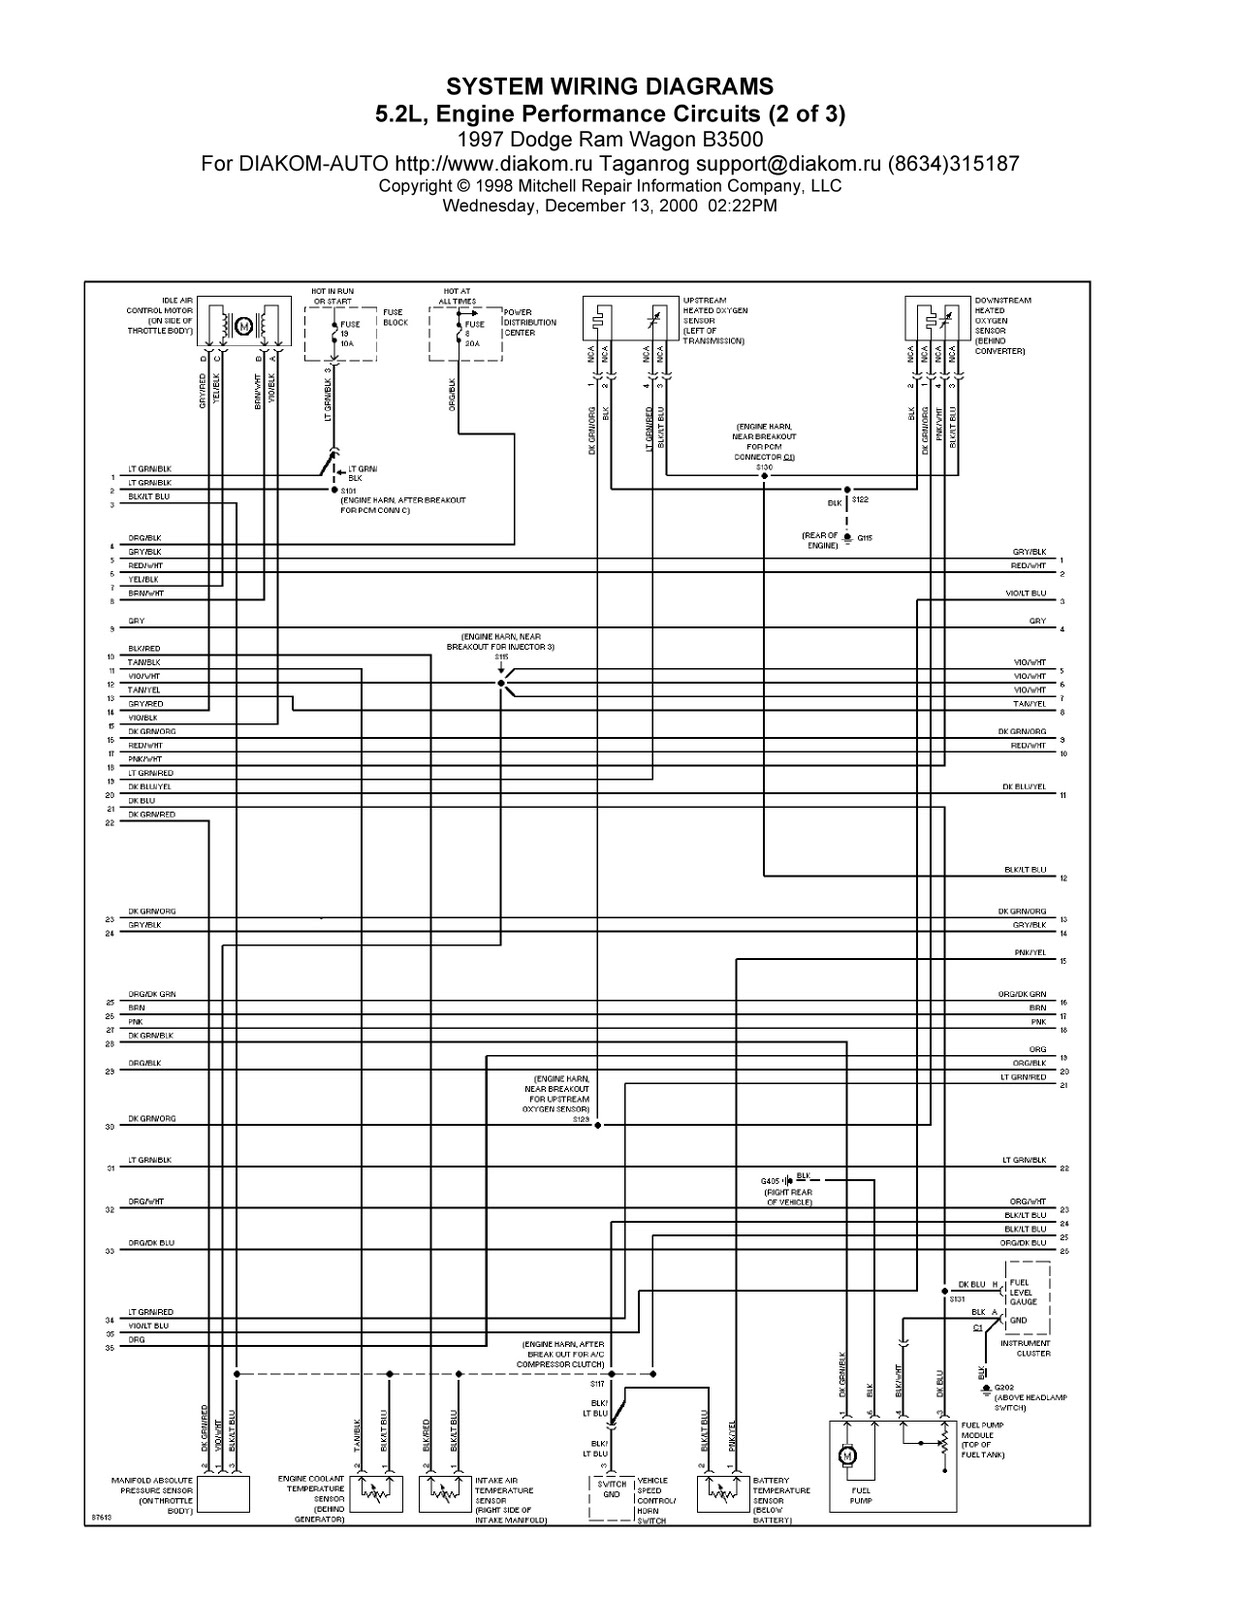 1997 dodge ram wagon b3500 system wiring diagram 5 2l 1997 dodge ram wiring  diagram 97 dodge ram radio wiring diagram